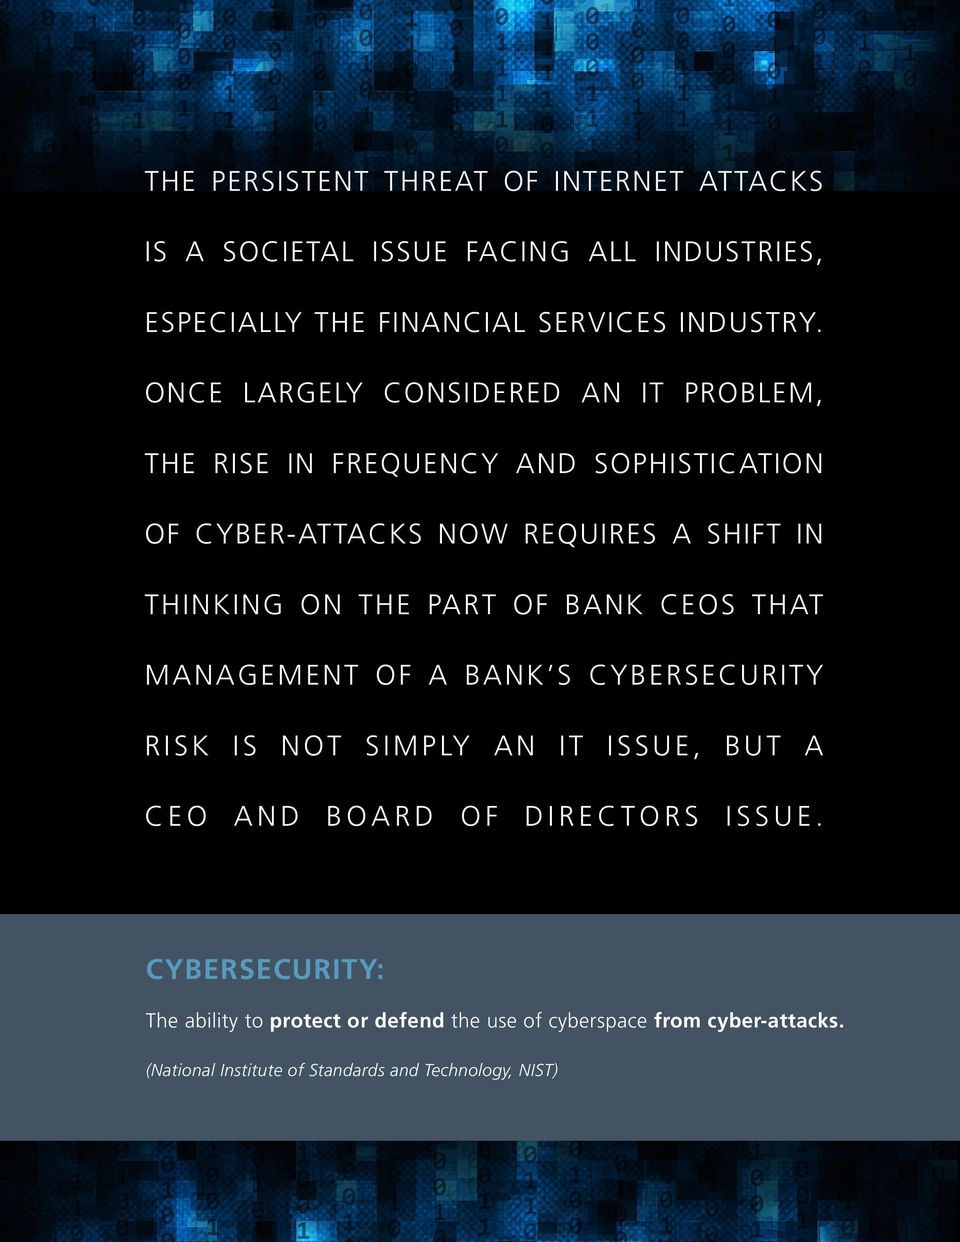 THE PART OF BANK CEOS THAT MANAGEMENT OF A BANK S CYBERSECURITY RISK IS NOT SIMPLY AN IT ISSUE, BUT A CEO AND BOARD OF DIRECTORS ISSUE.